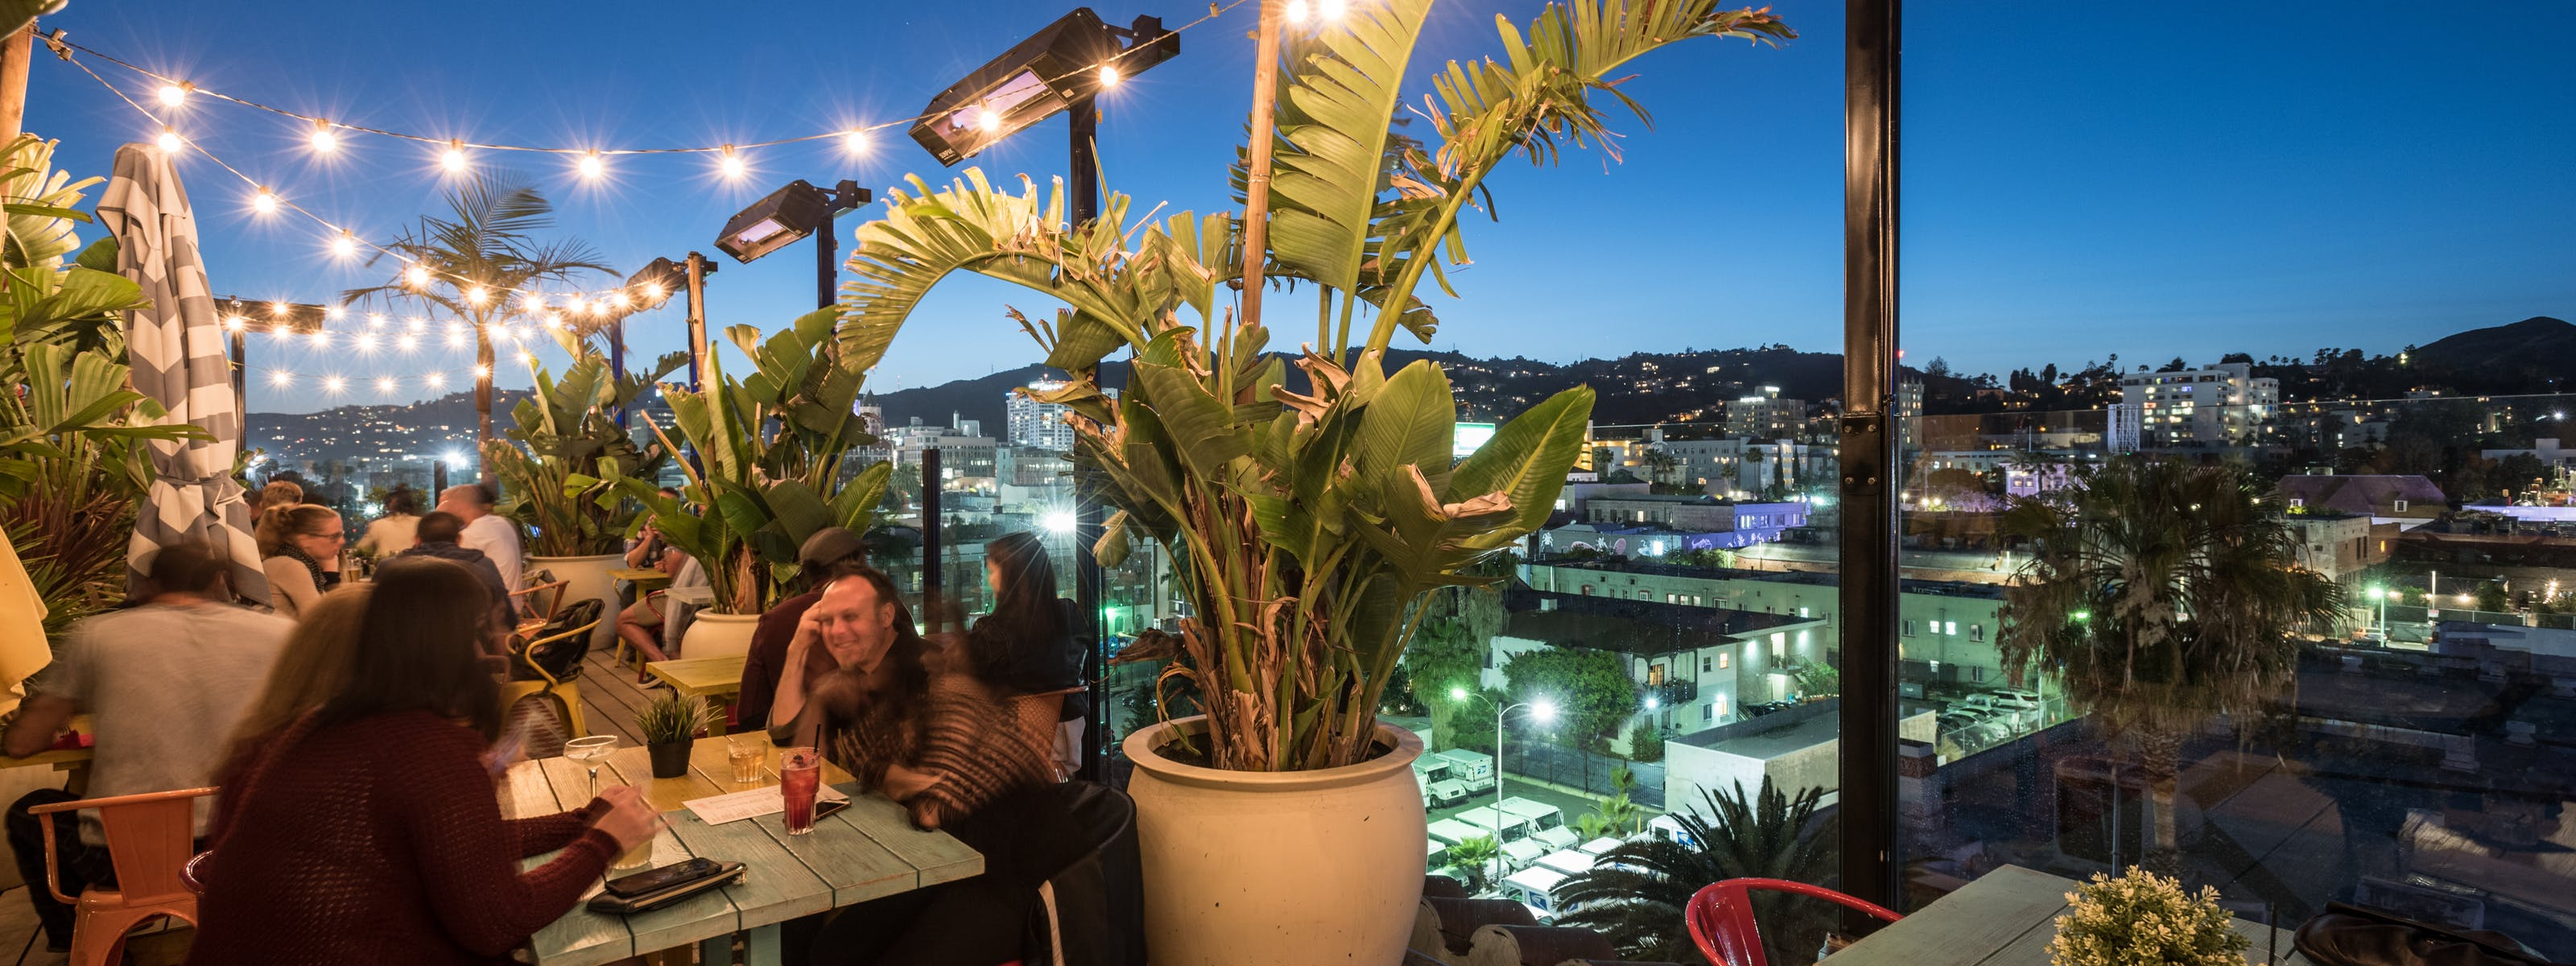 11 LA Spots Where It's OK To Get Kind Of Drunk Right Now - Los Angeles - The Infatuation